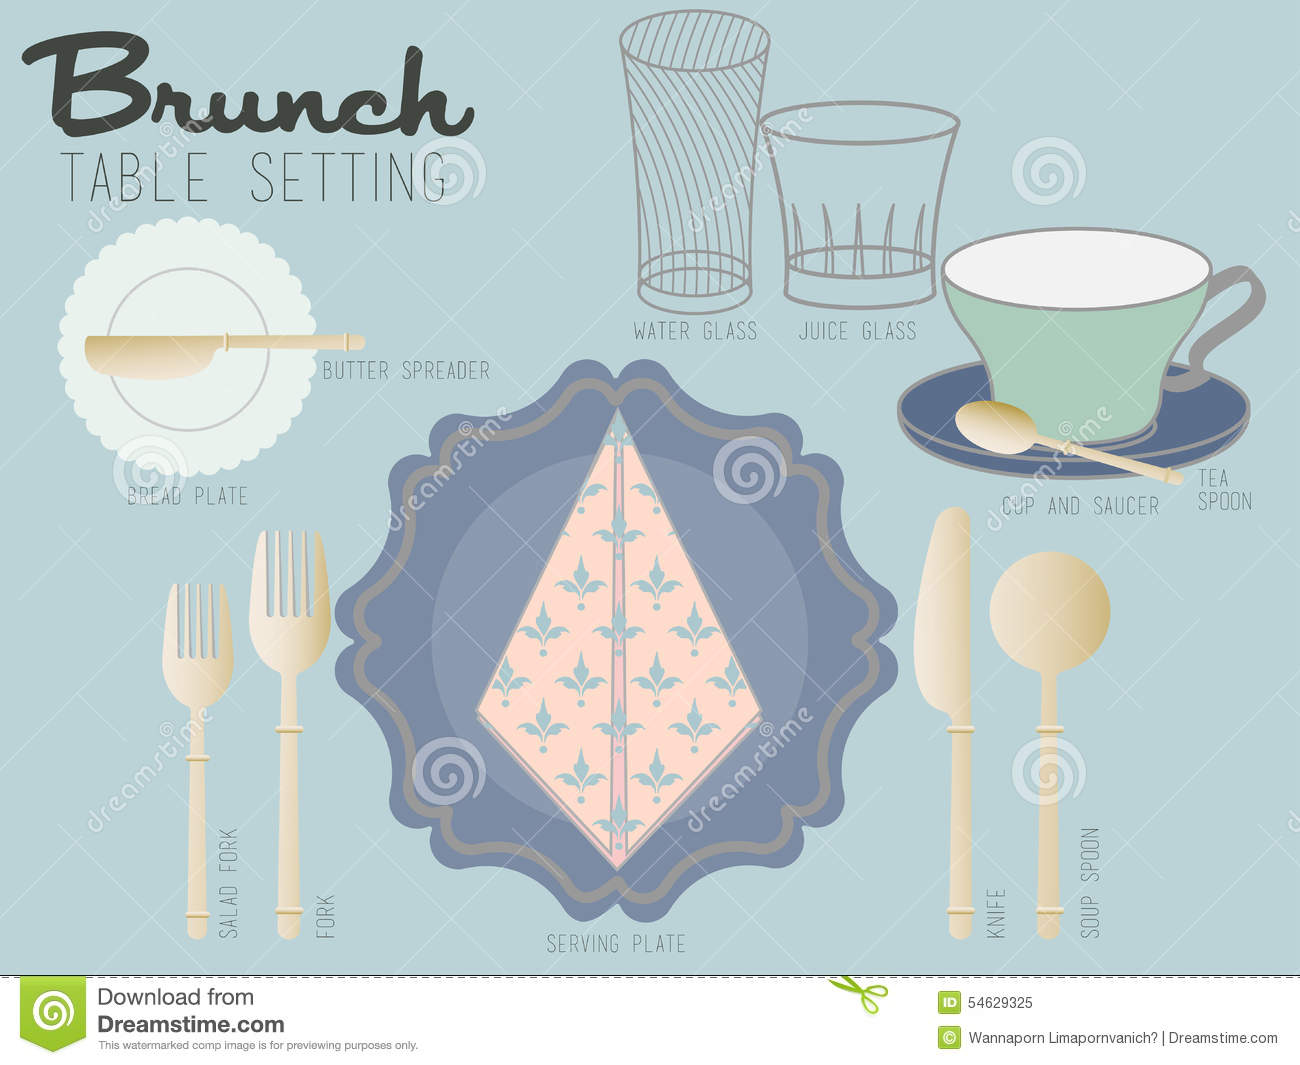 Brunch Table Setting Stock Image Image Of Dinner Butter